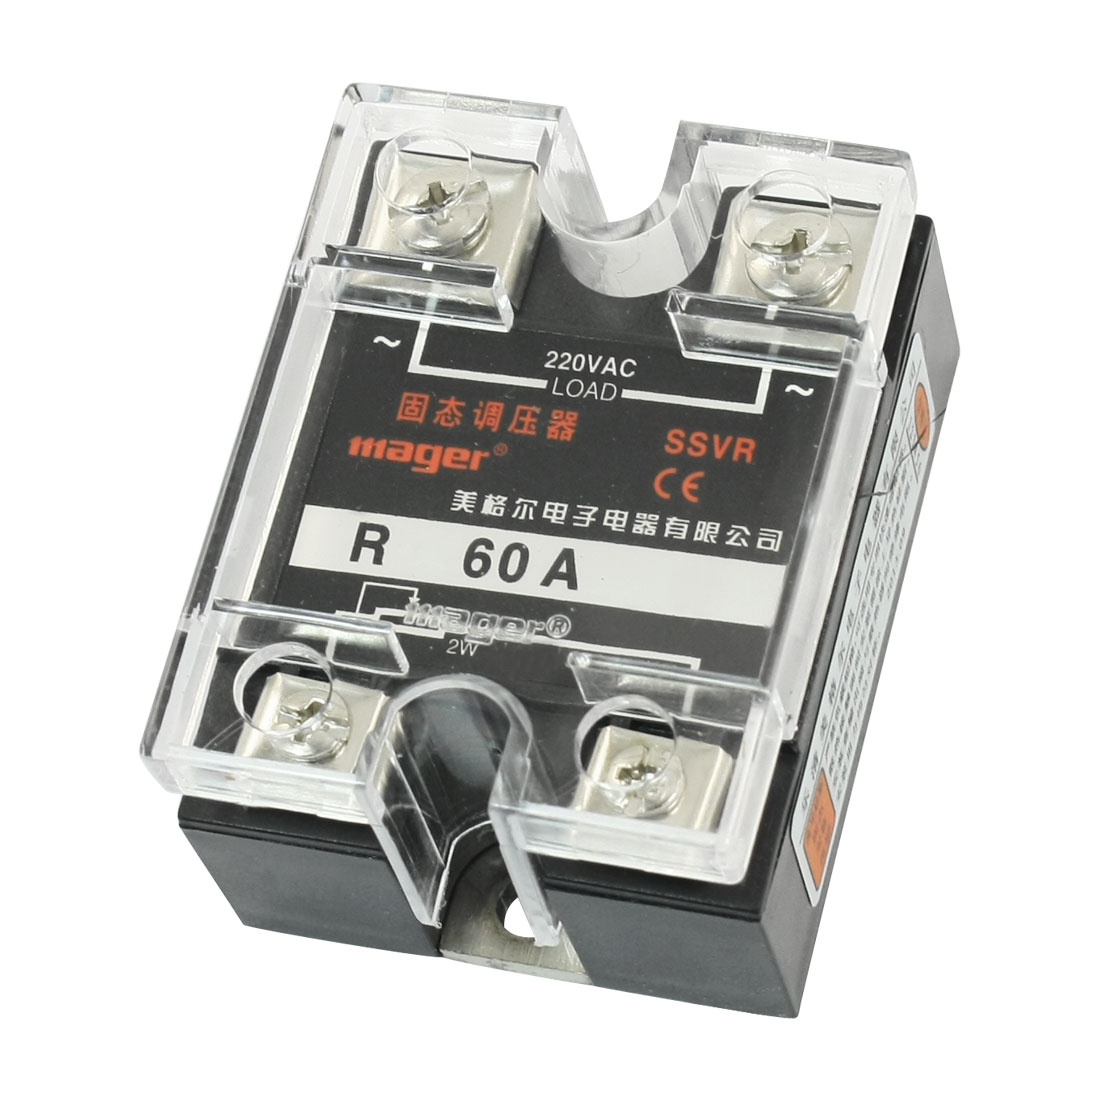 AC220V 60A 2W 470-560K Ohm Resistance Type Single Phase Rectangle Case SSR Solid State Relay Voltage Regulator